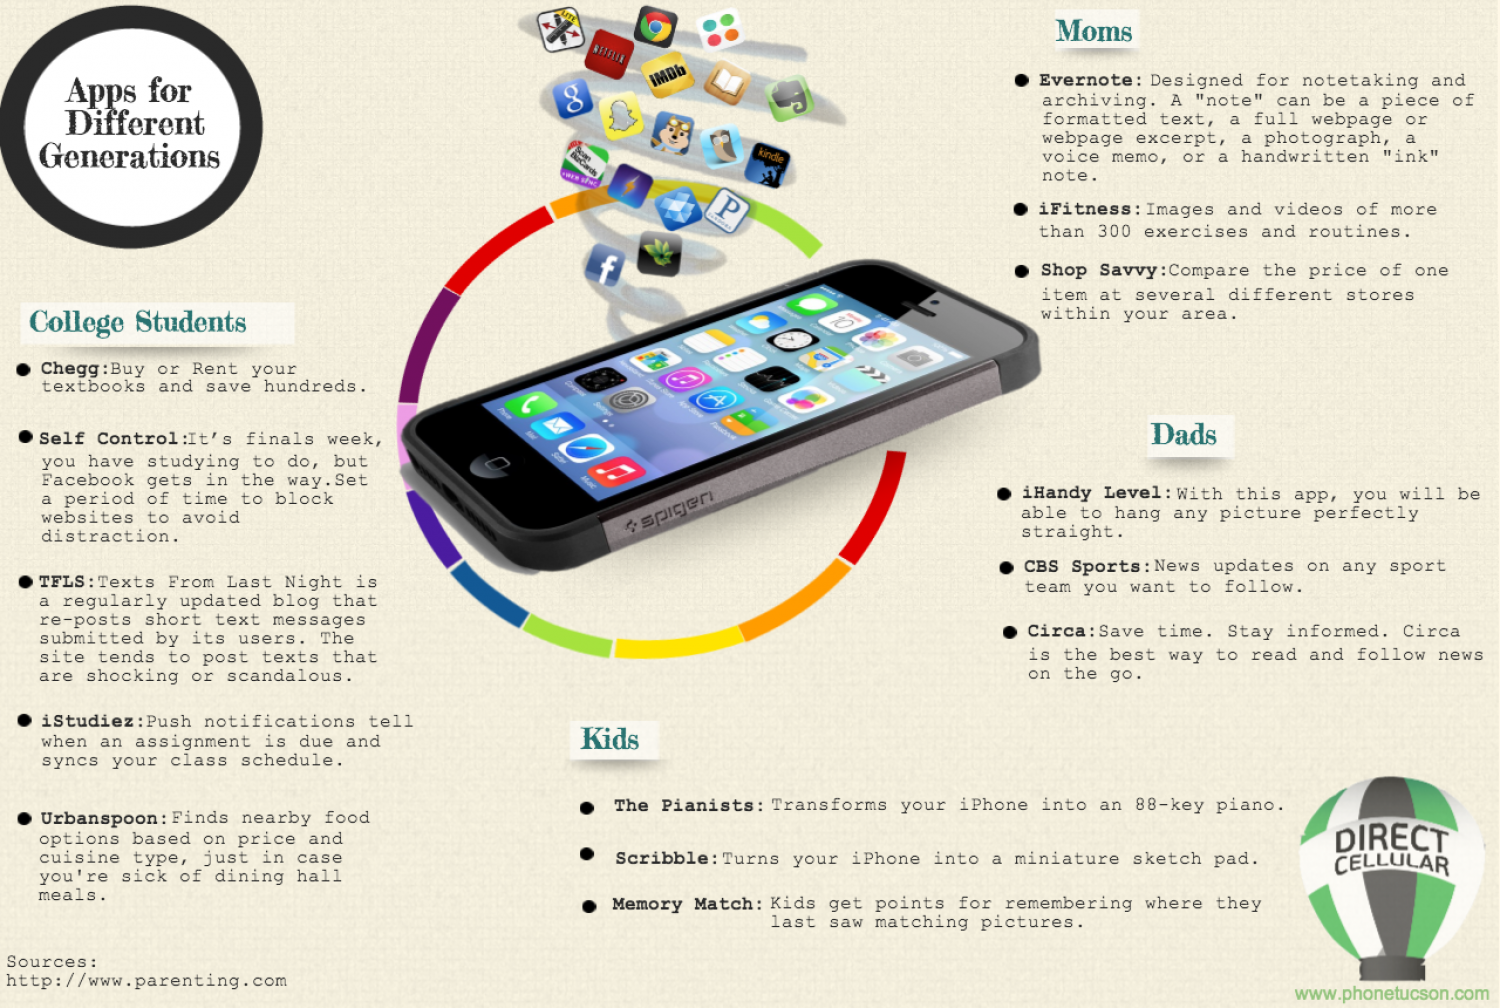 Apps for Different Generations Infographic